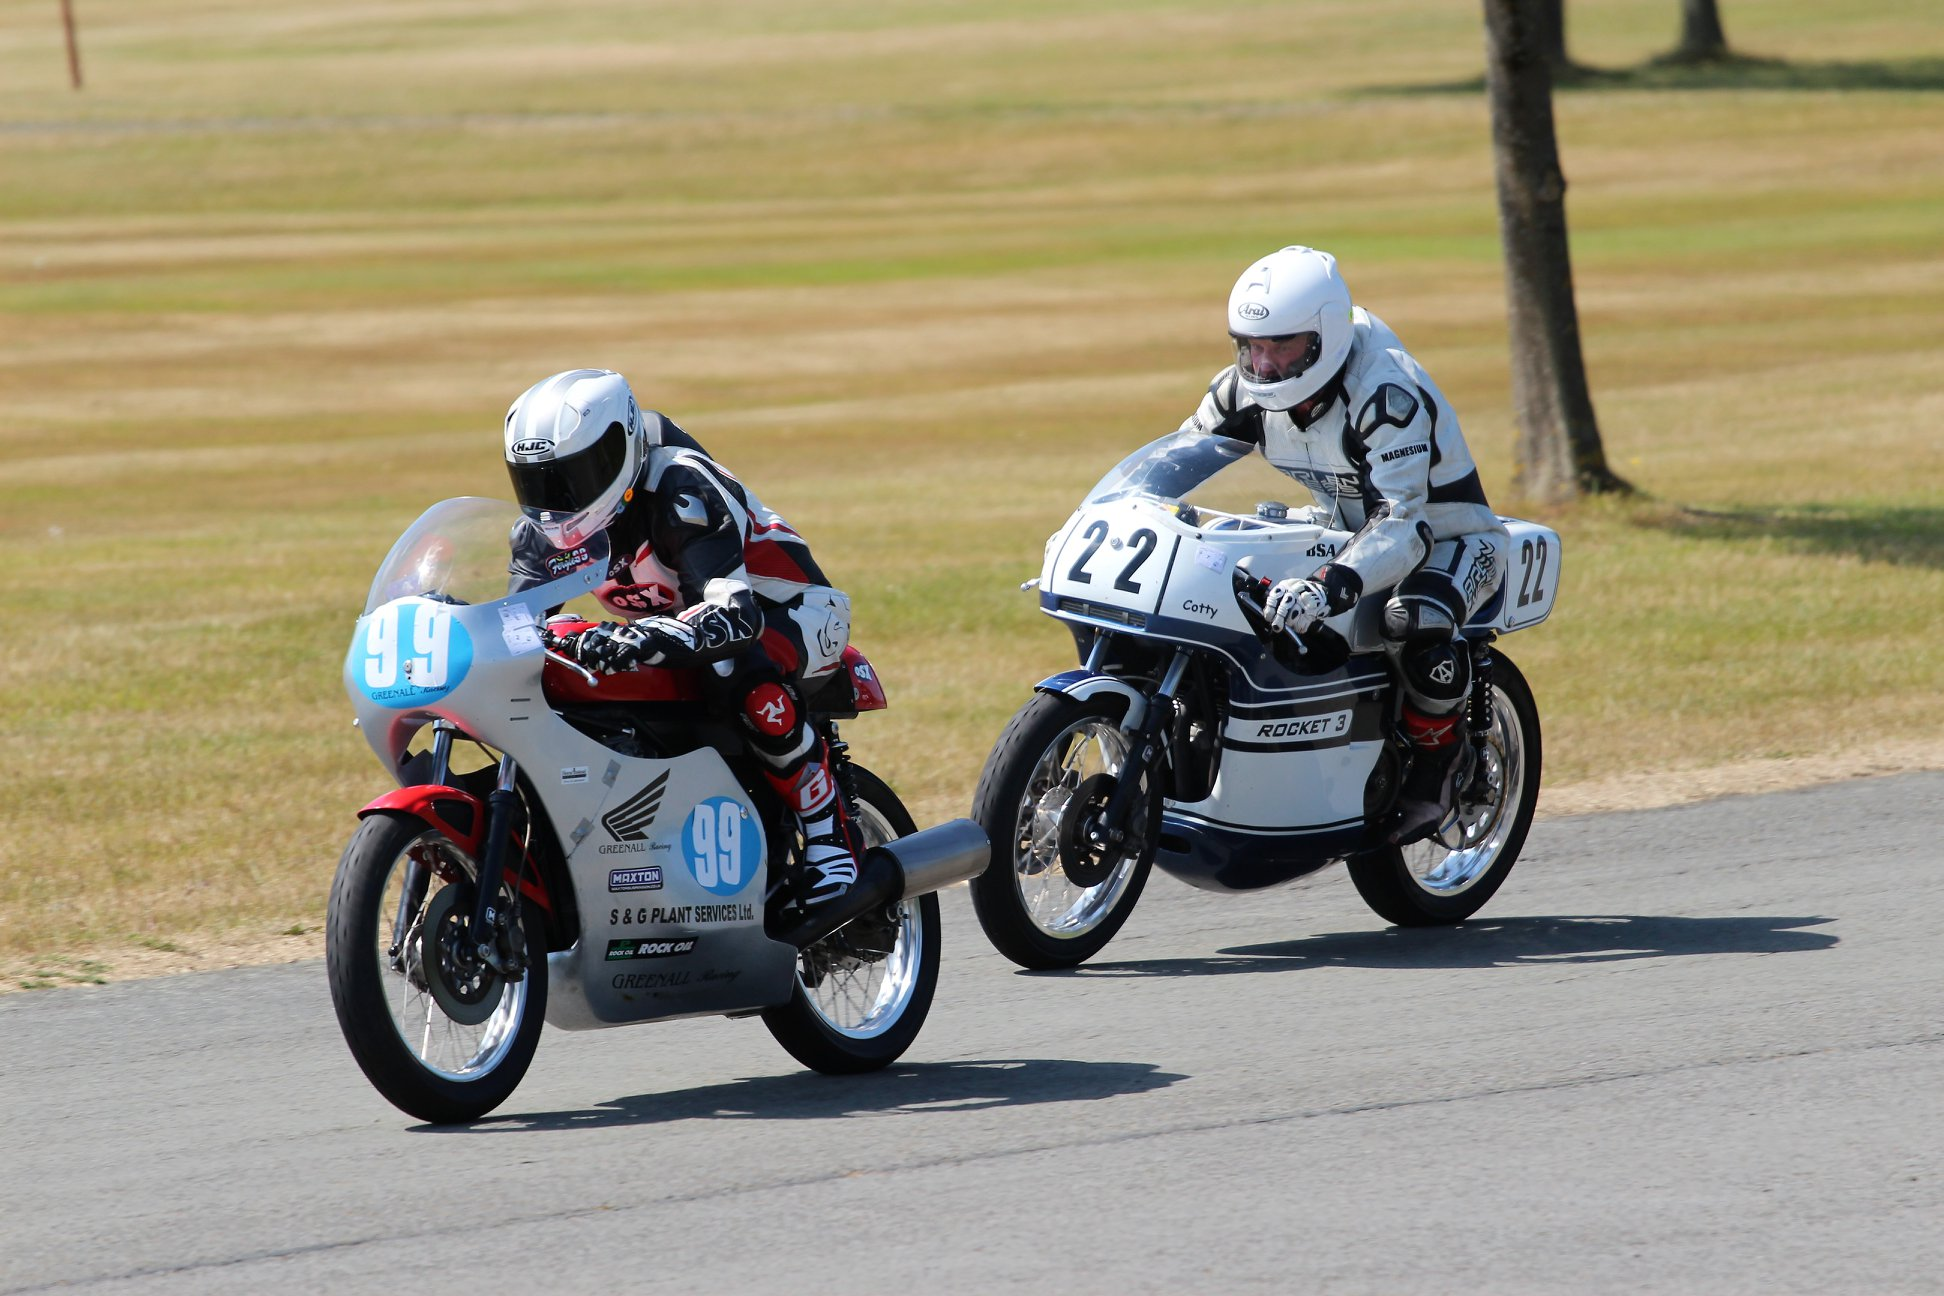 Unlimited Classic winner Derek Heap (22) and all-around classic ace Steve Ferguson (99) jostling for position...